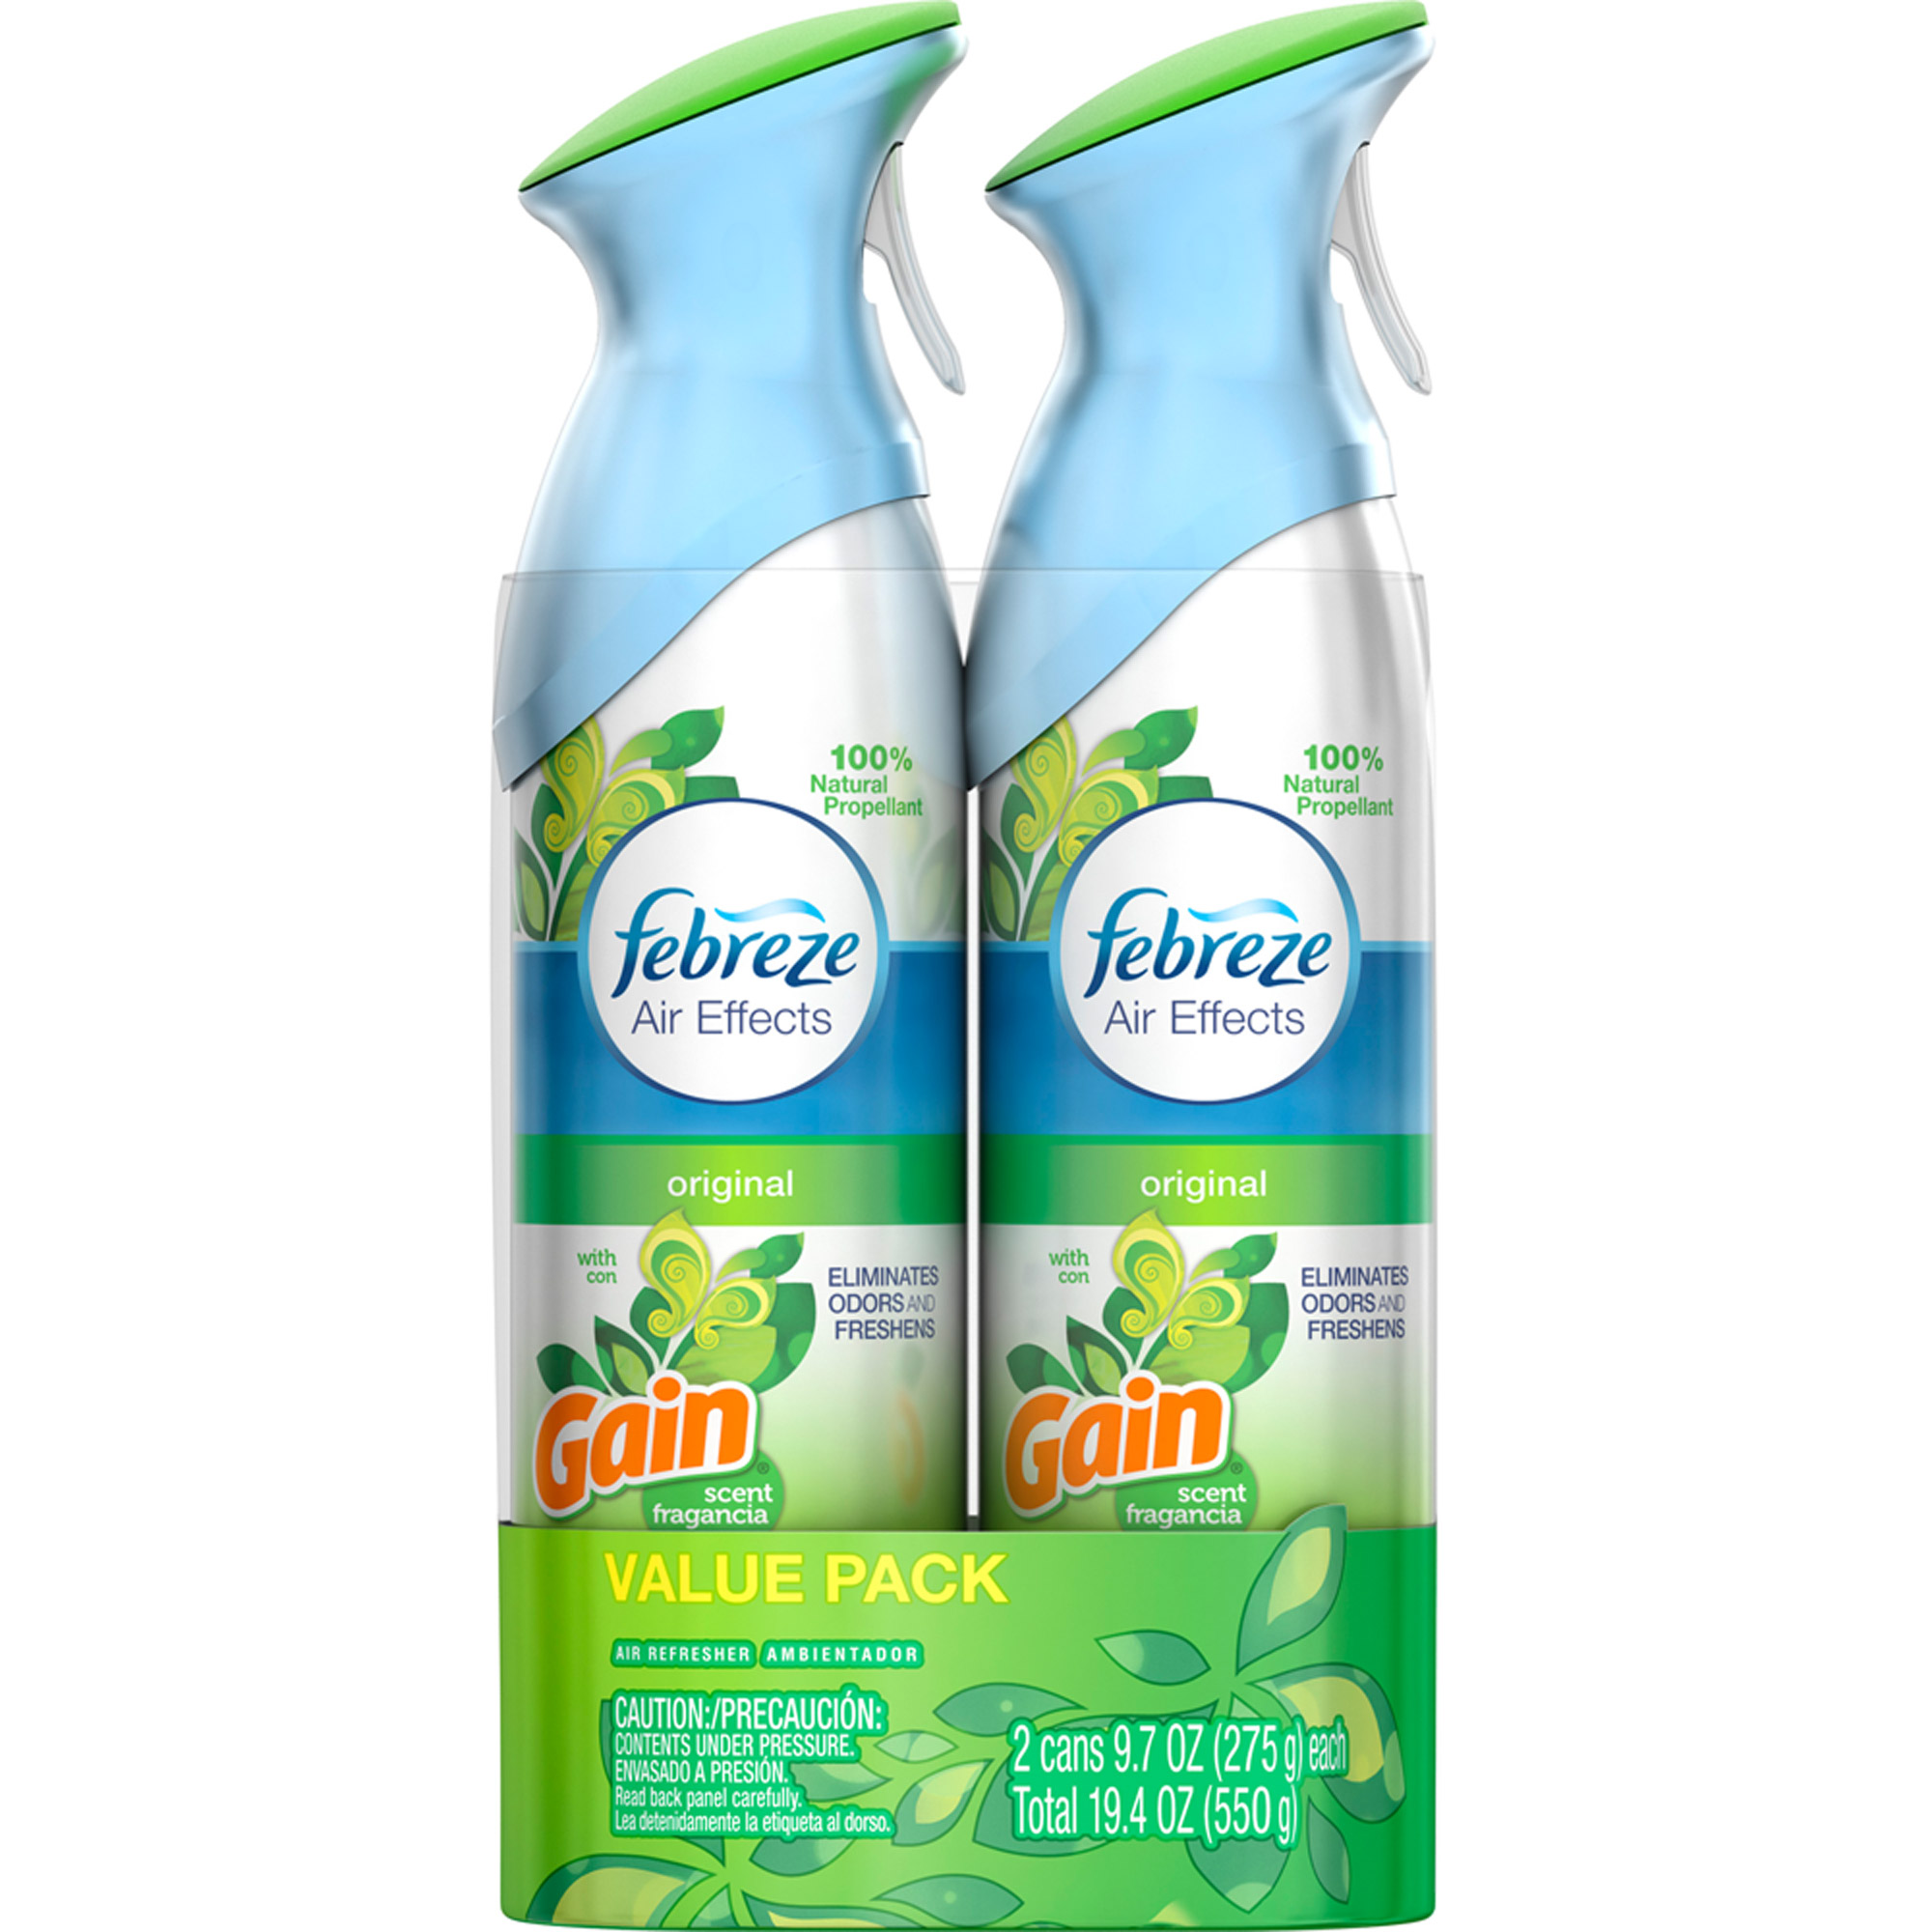 Febreze Air Effects Gain Original Air Freshener, 9.7 oz, 2 count